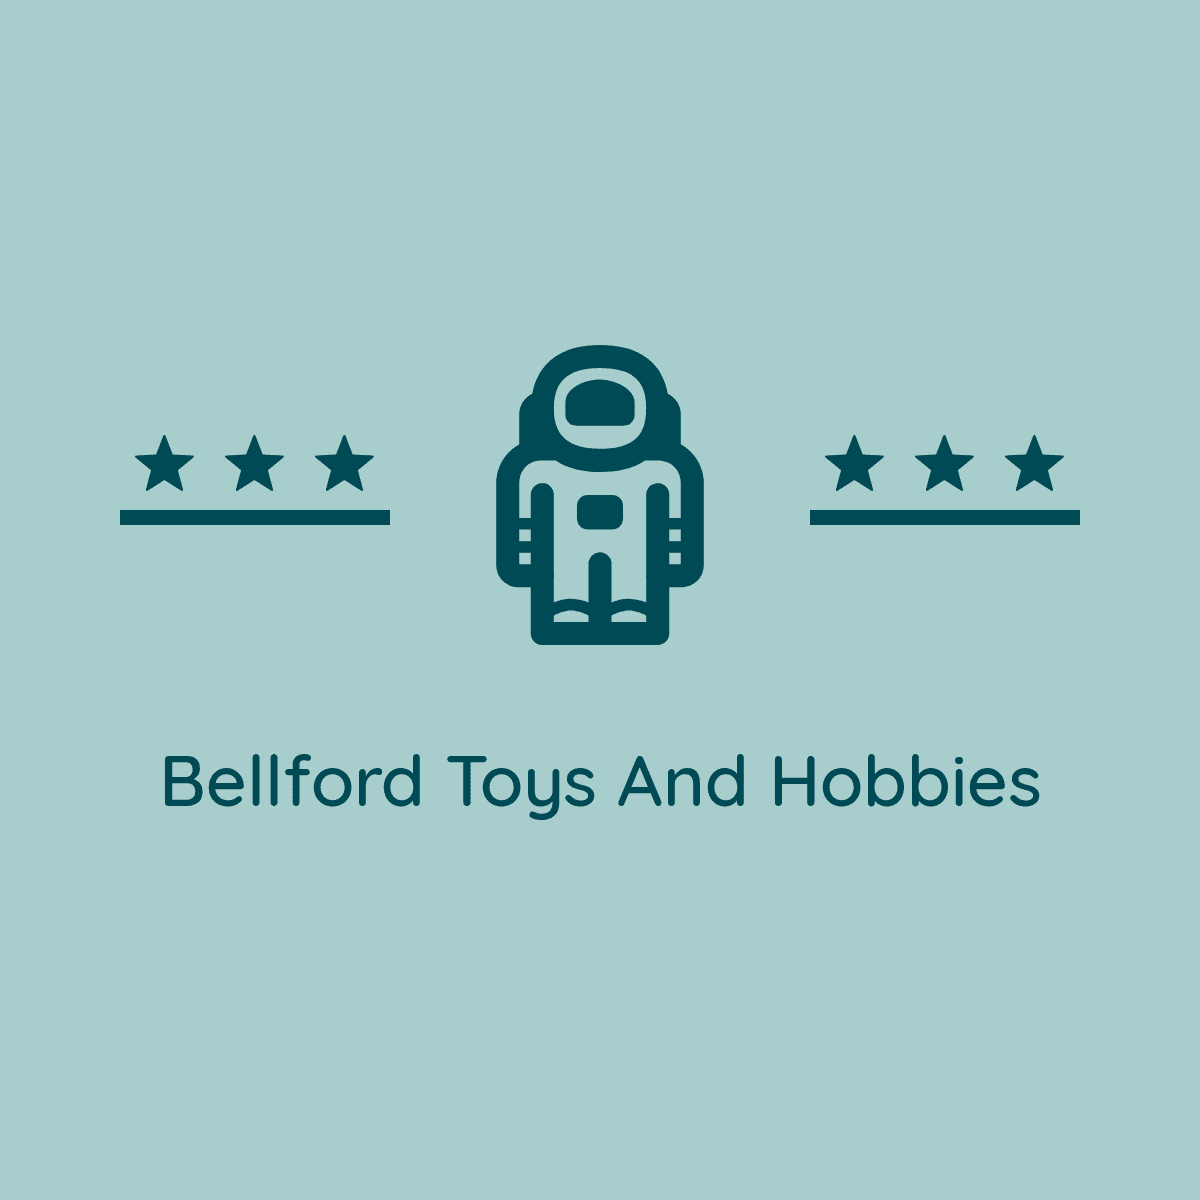 Bellford Toys And Hobbies Logo